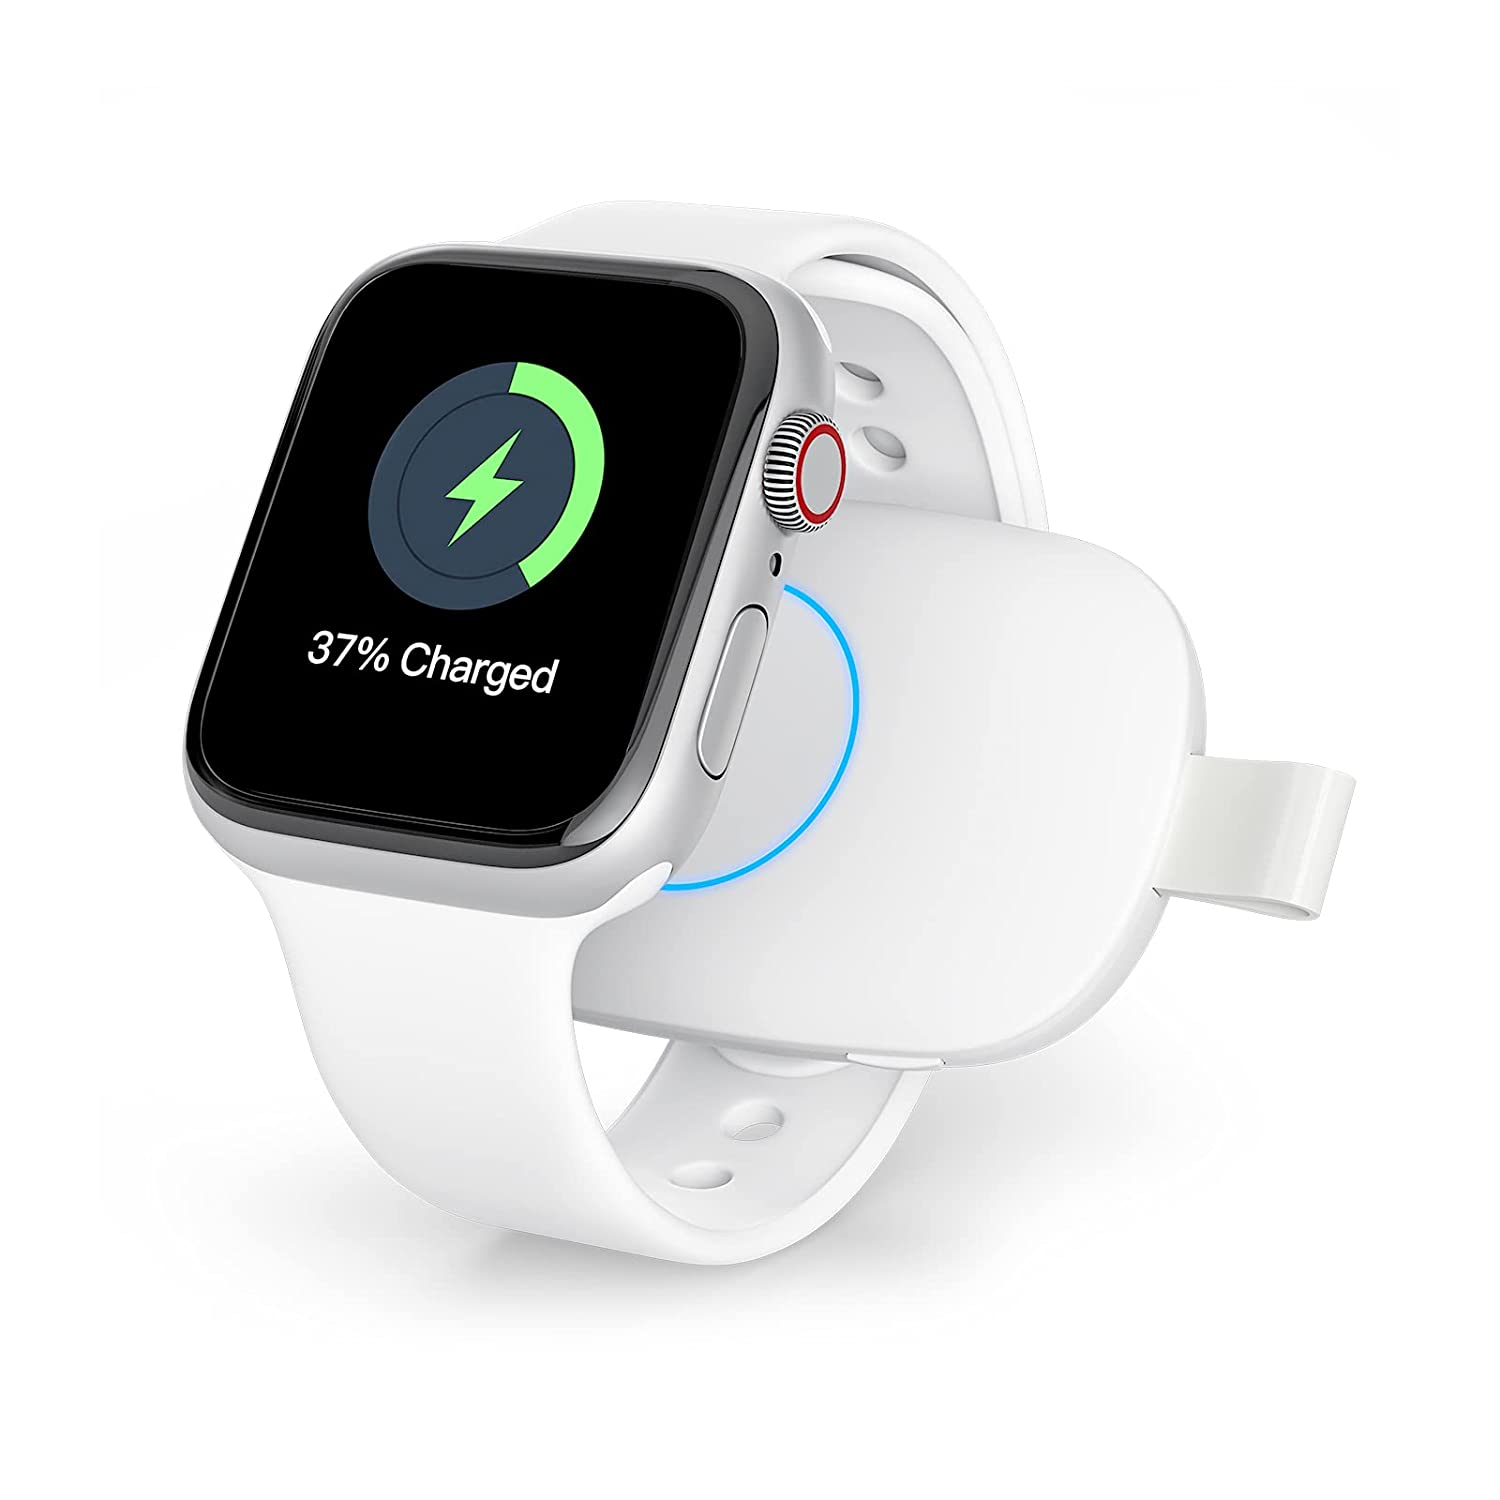 Wireless Watch Charger for Apple Watch Power Bank Charger Portable 1000mAh